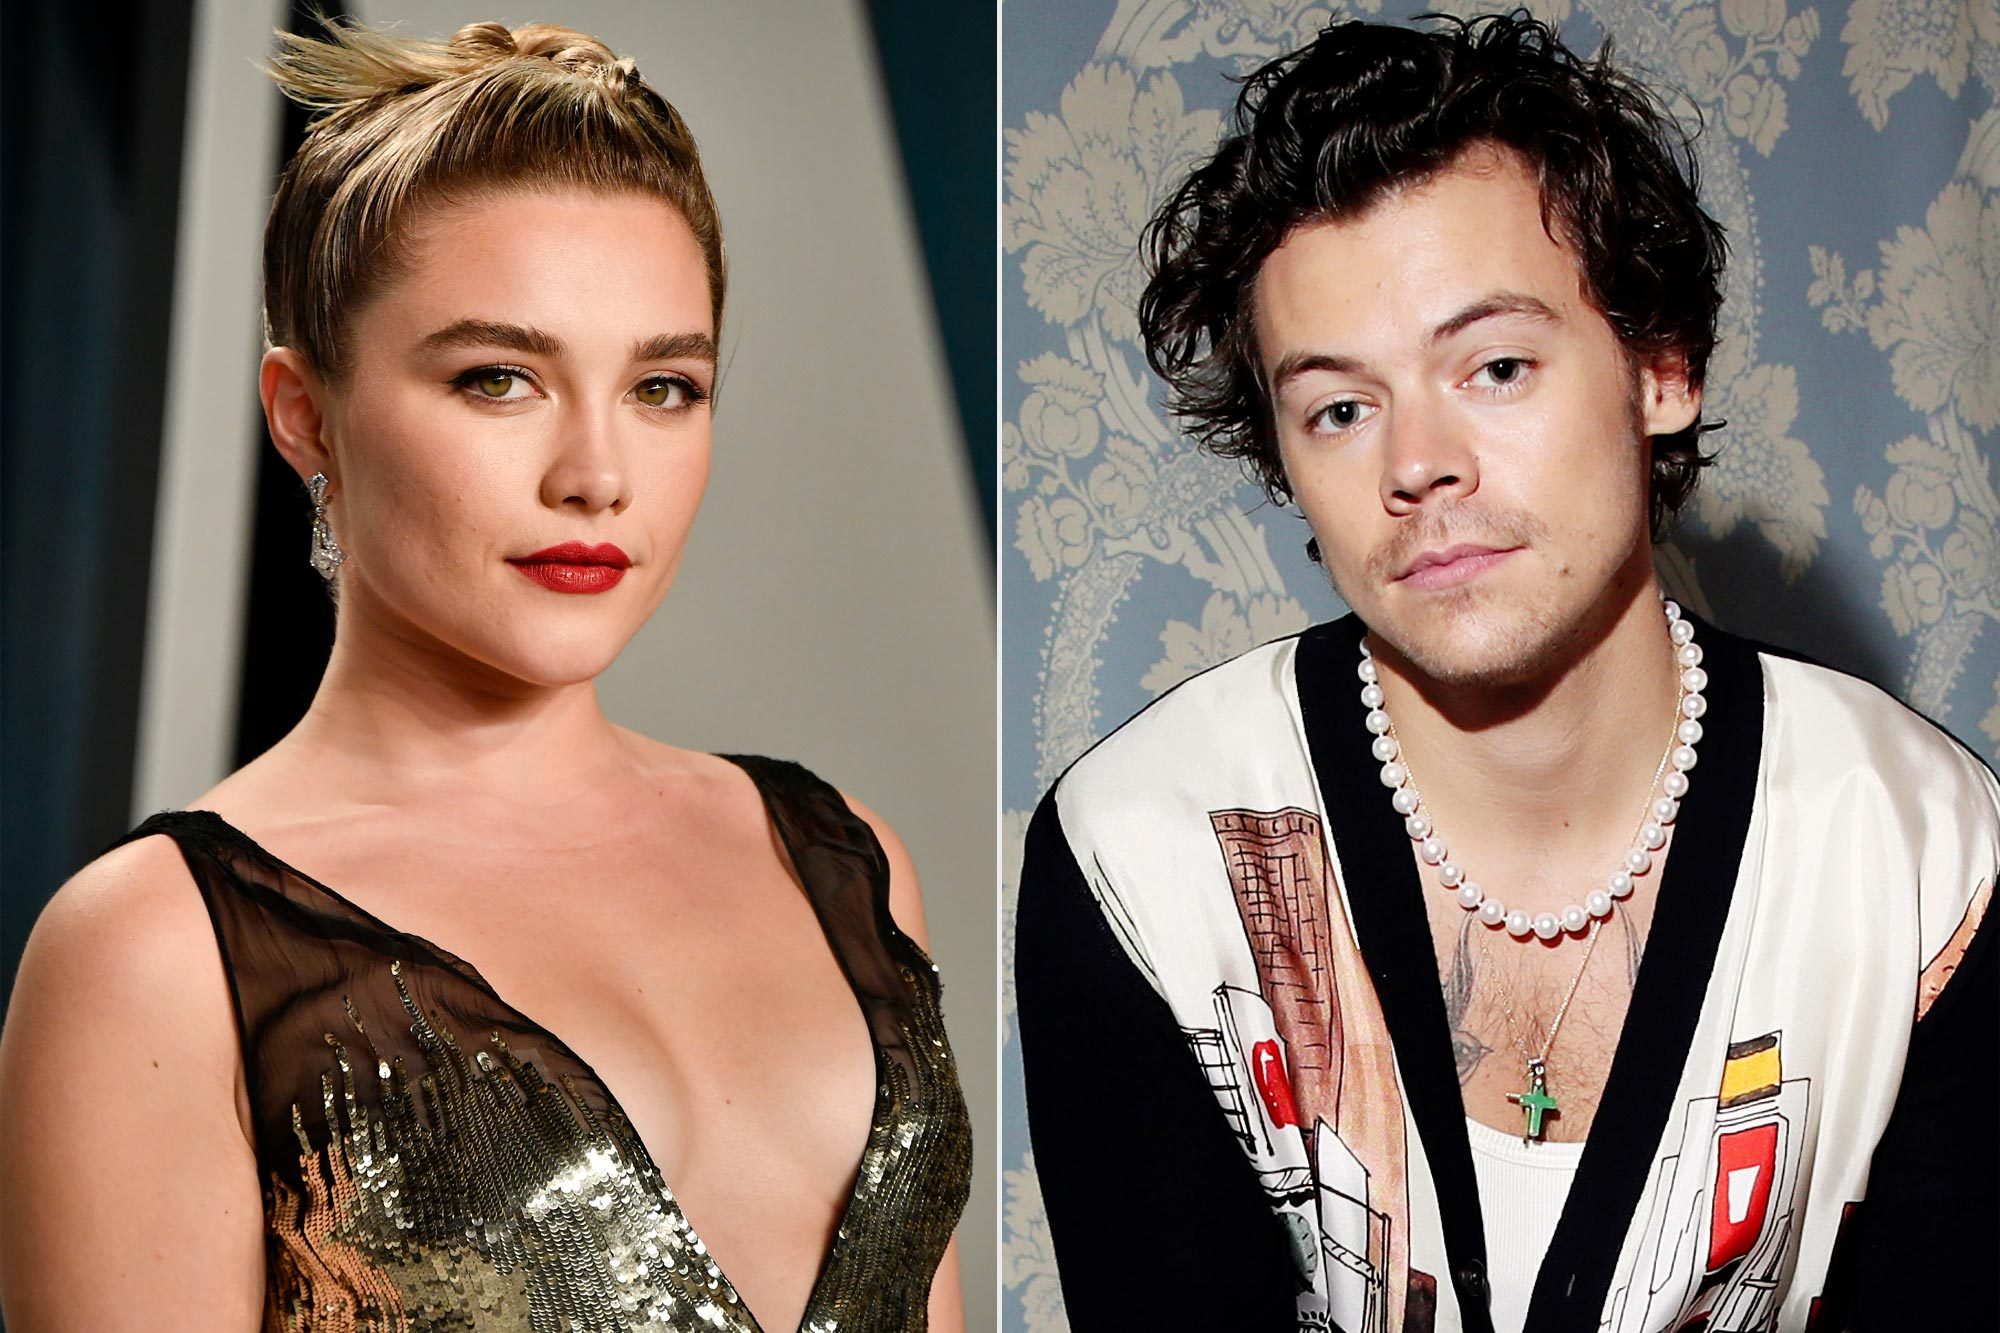 Florence Pugh and Harry Styles